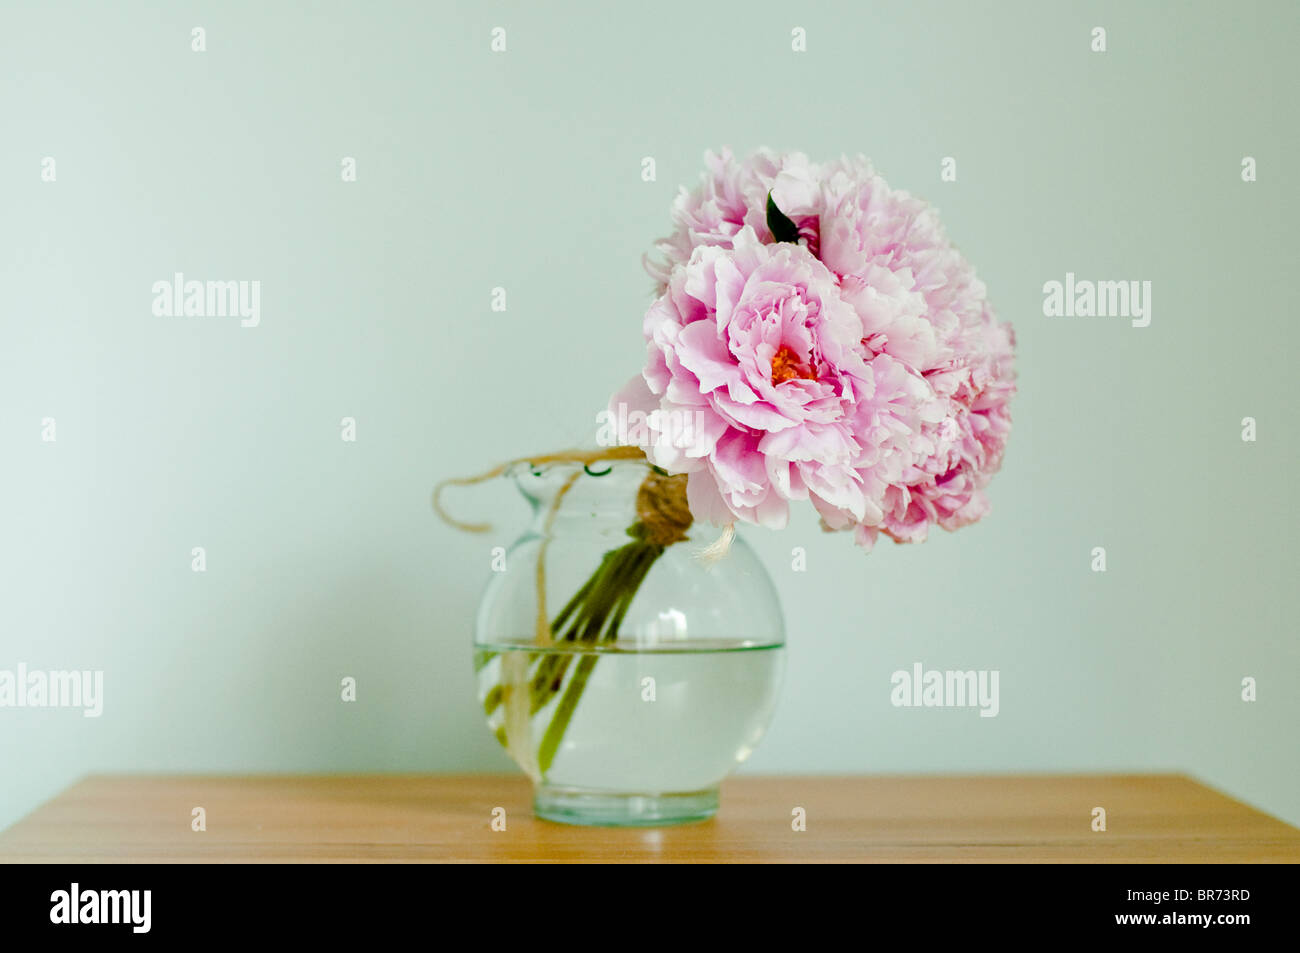 A bouquet of pink peonies in a vase on a table. - Stock Image